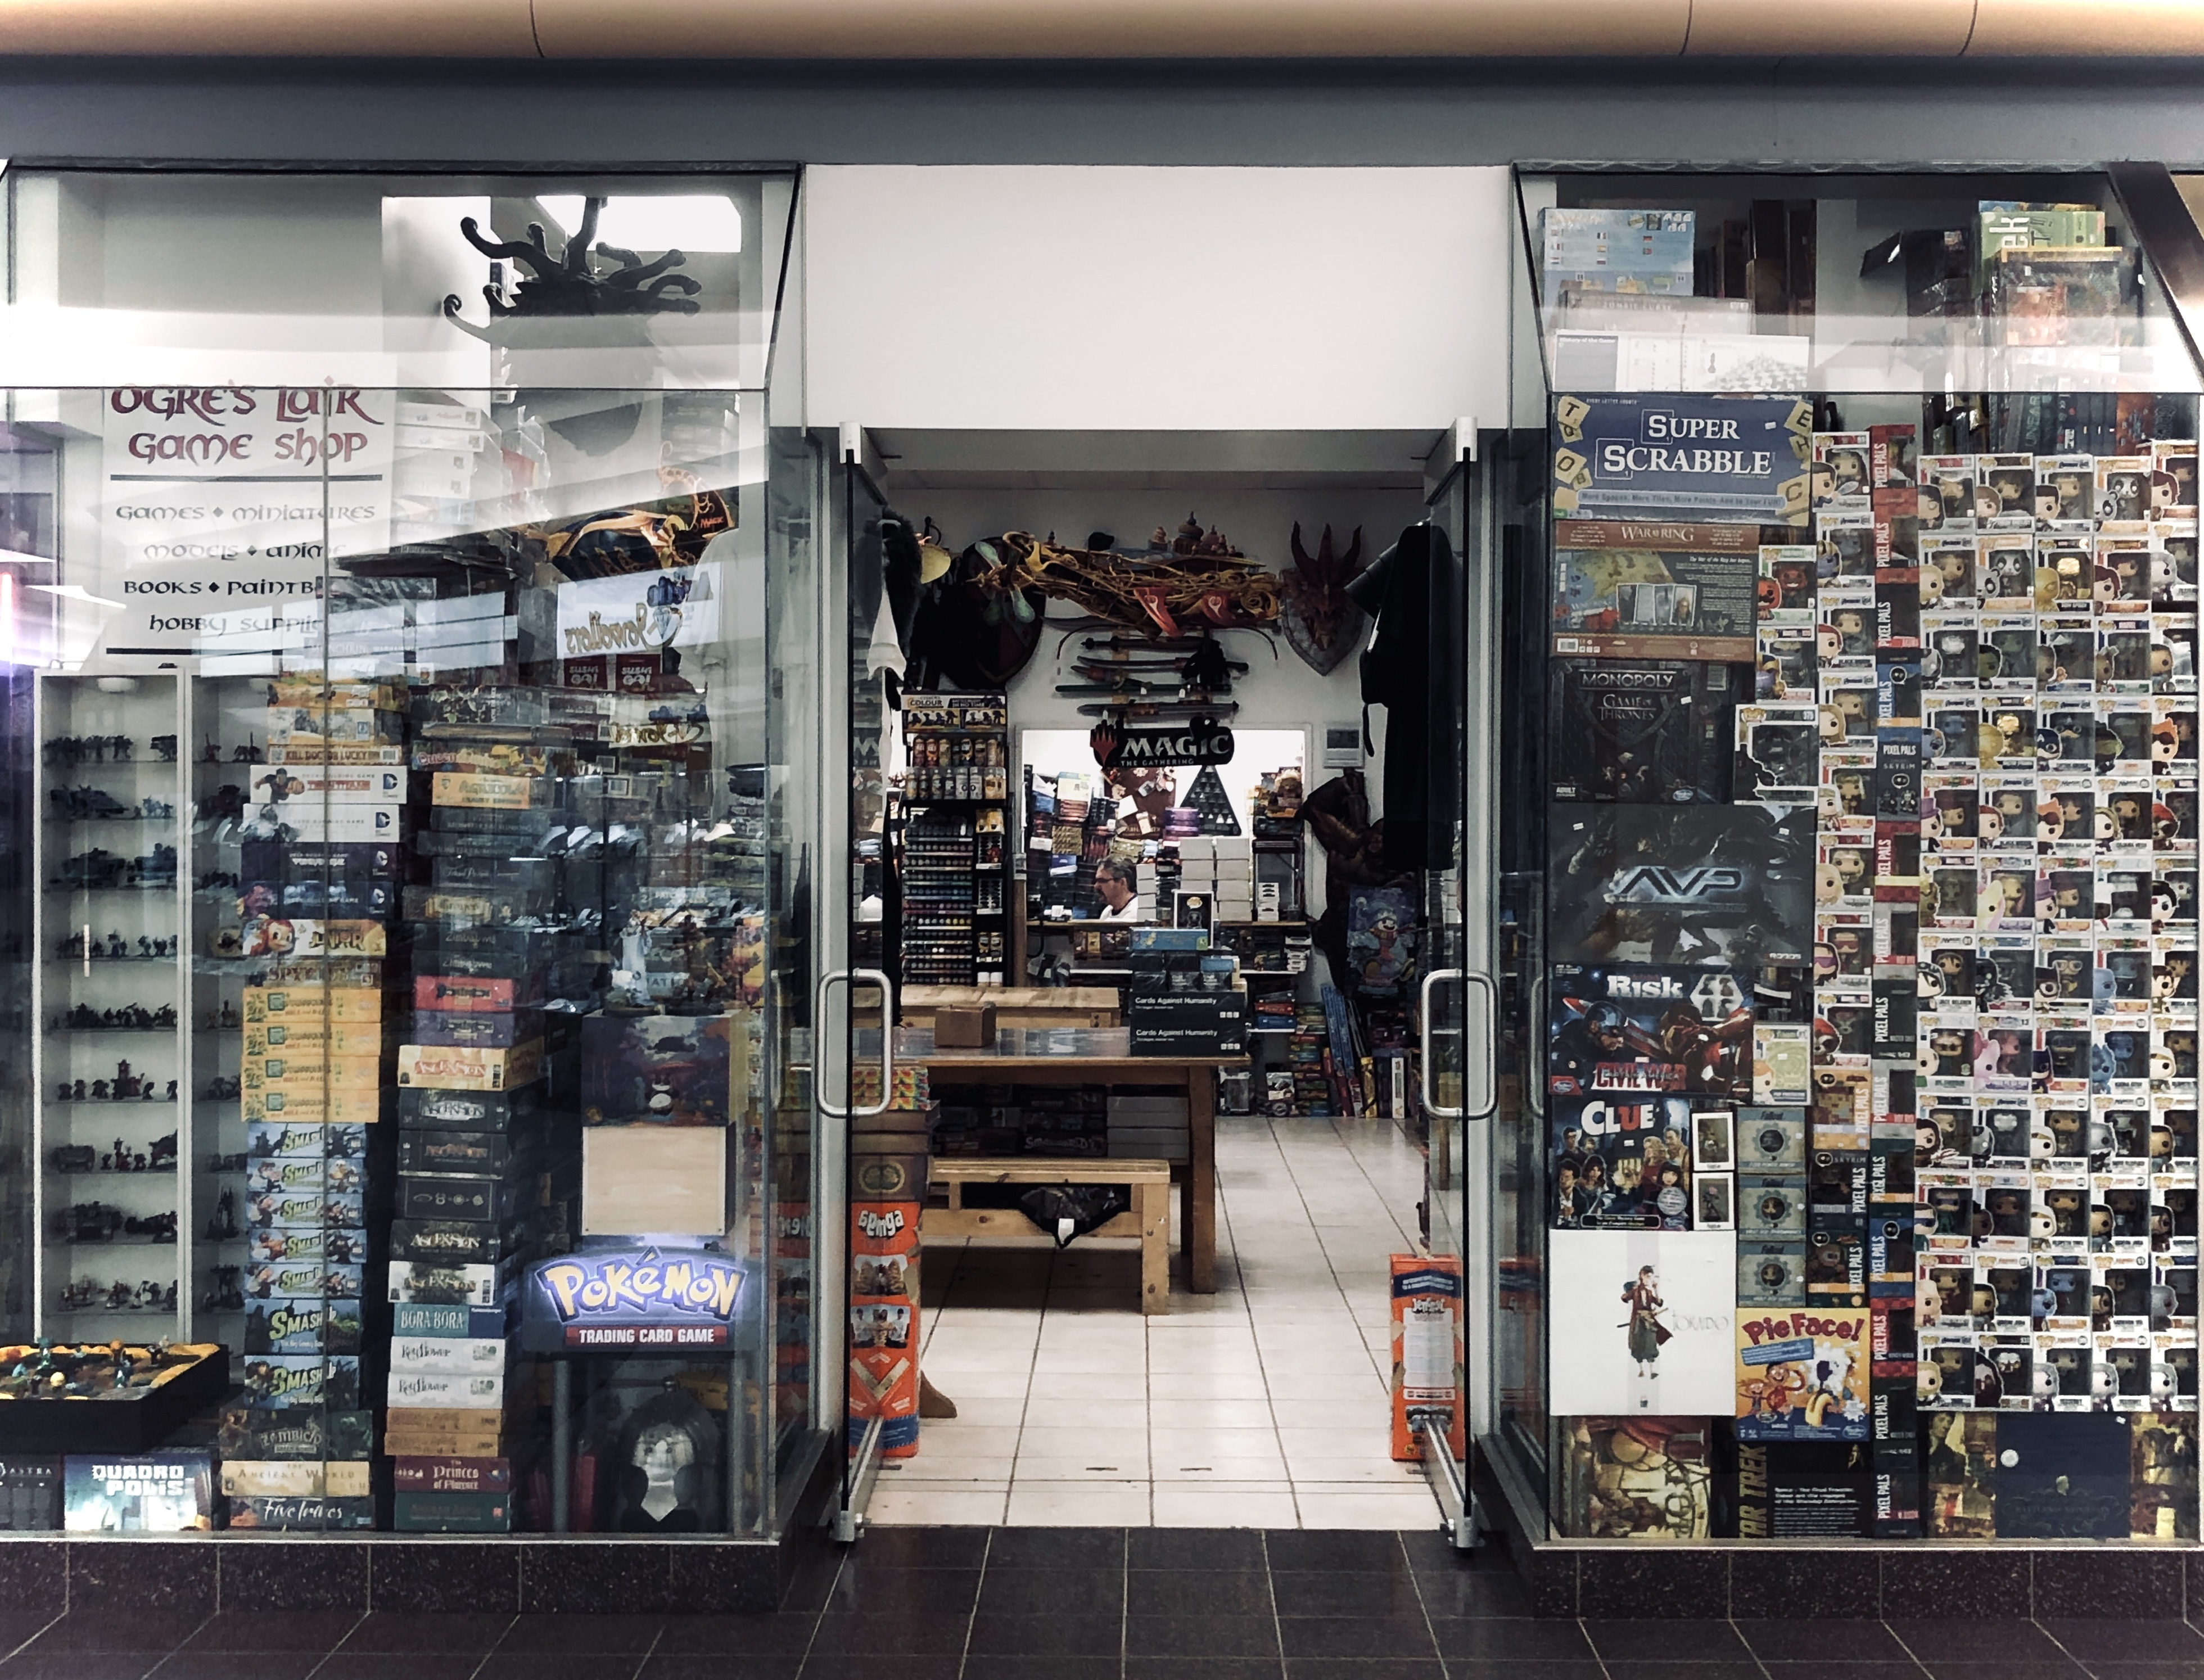 Ogre's Lair, a games shop, is one of the mall's few remaining tenants. (John Last/CBC)